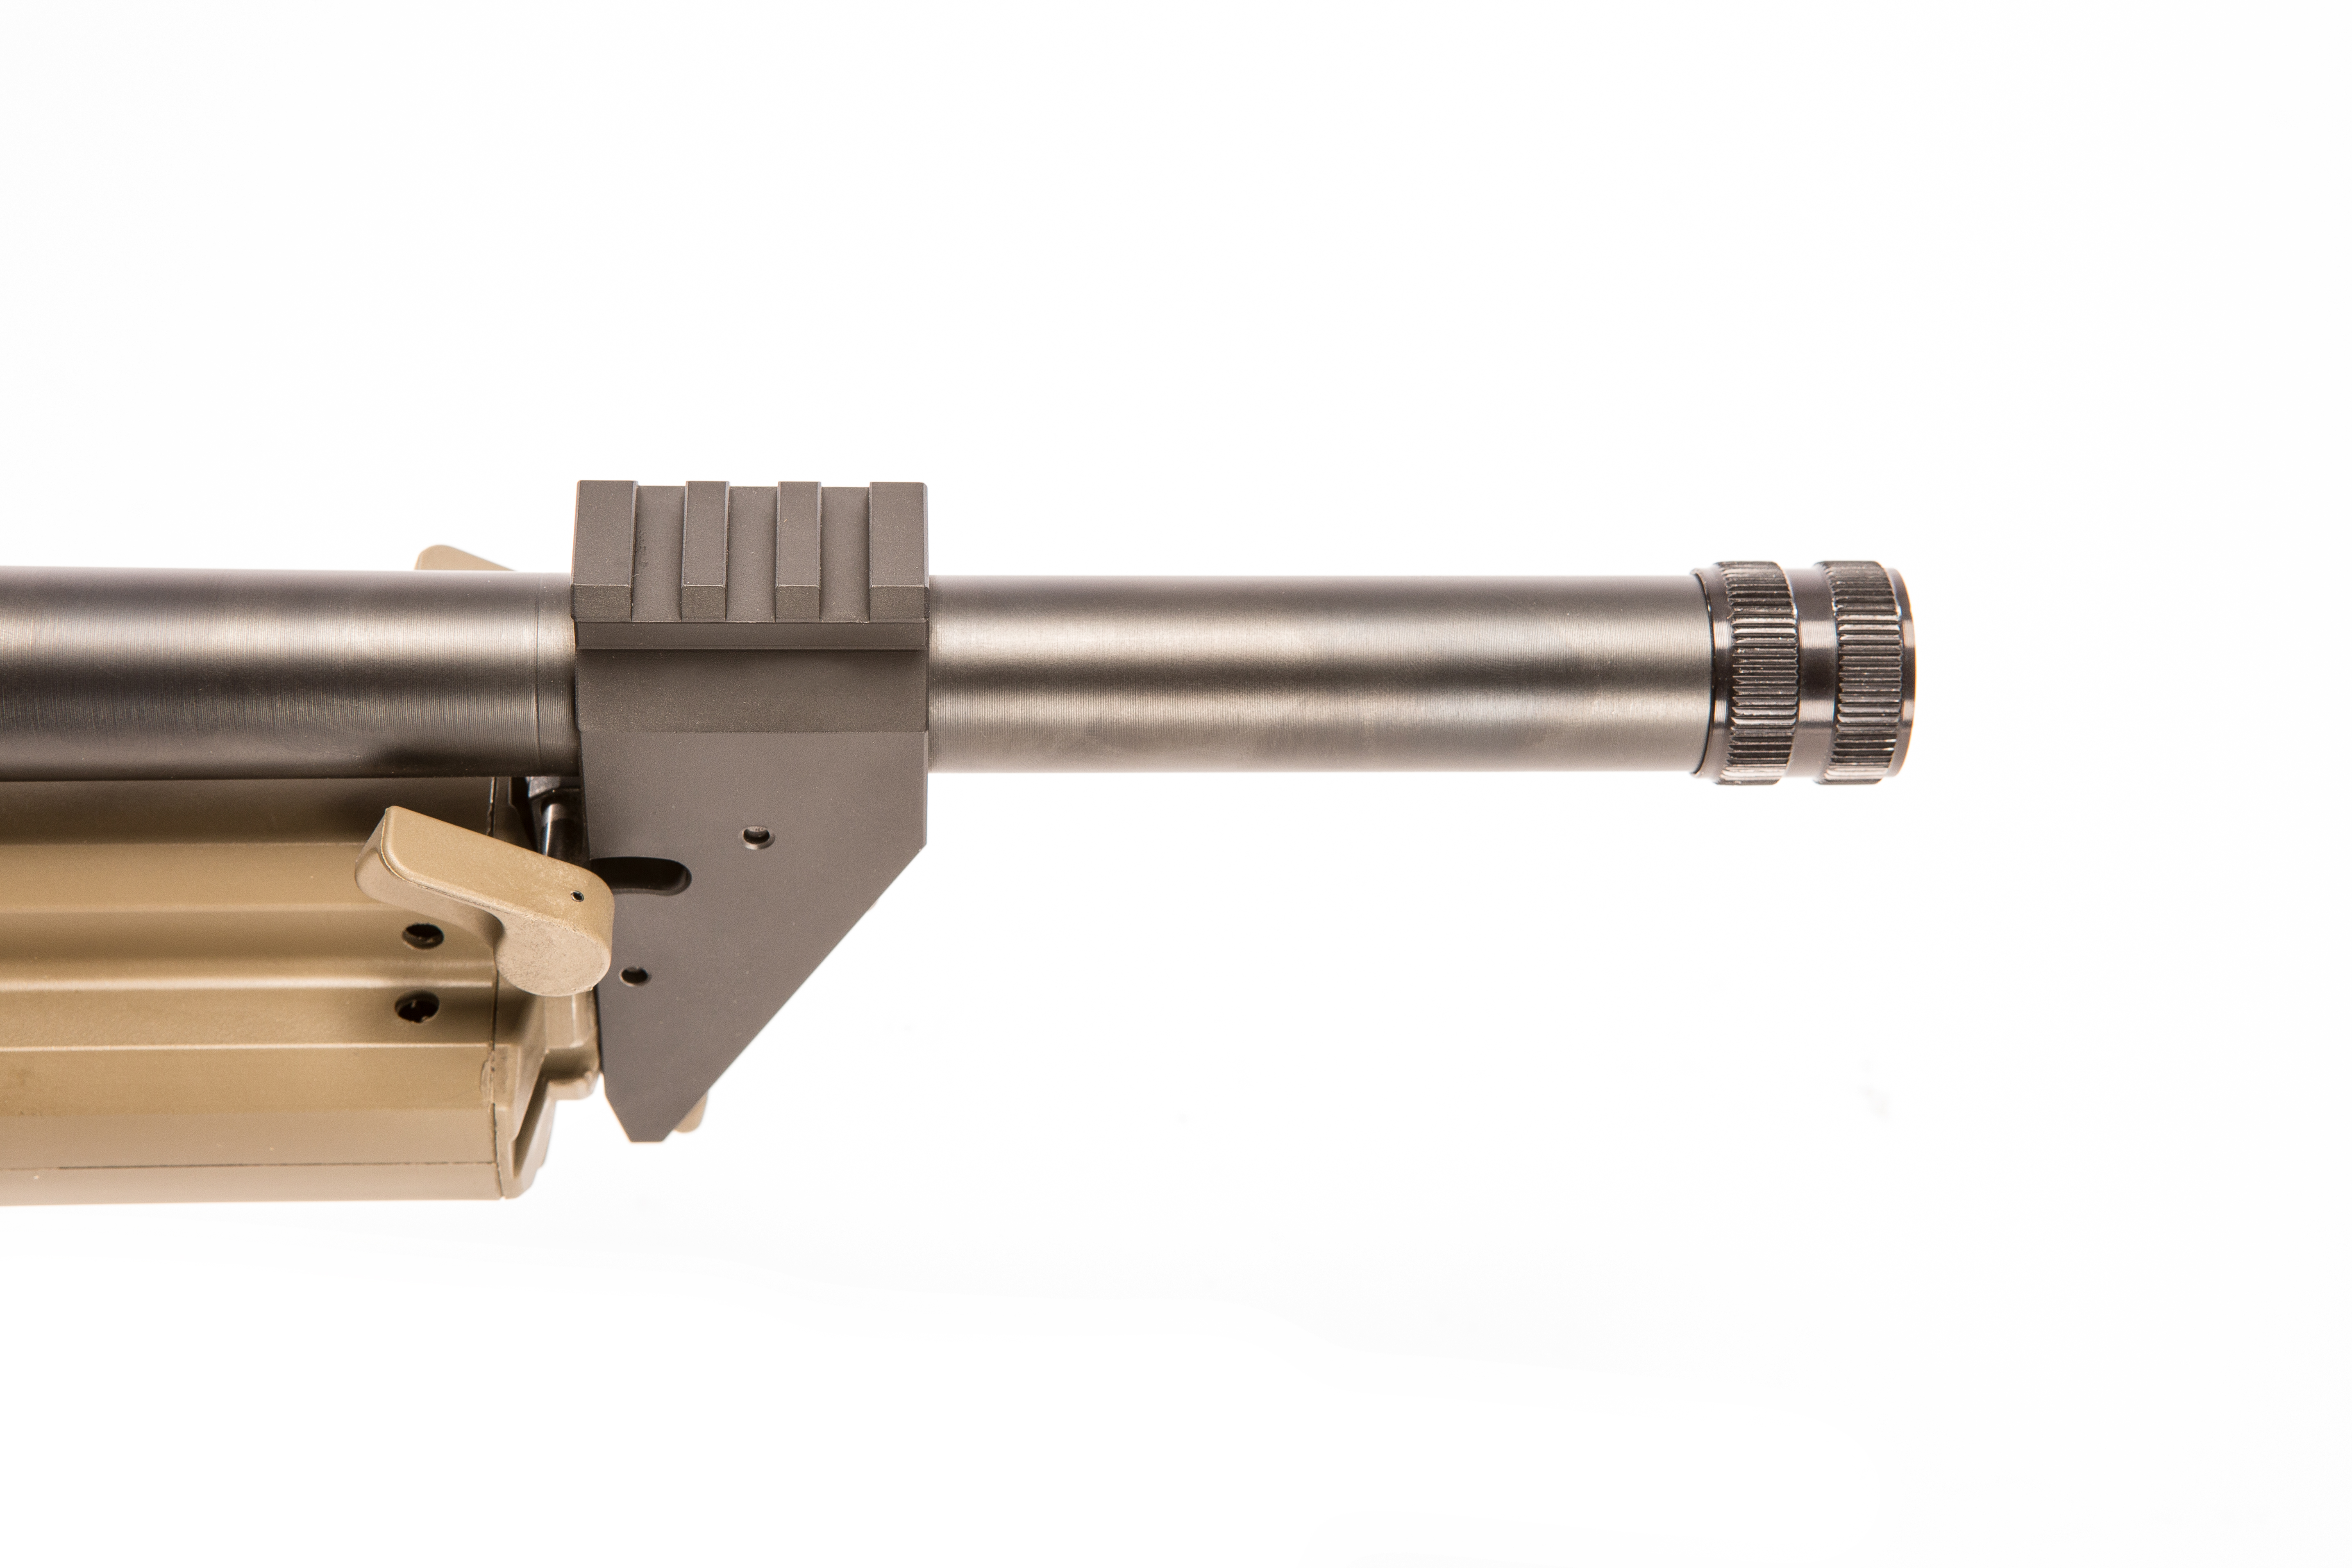 Shotgun comes standard with screw-on thread protector.